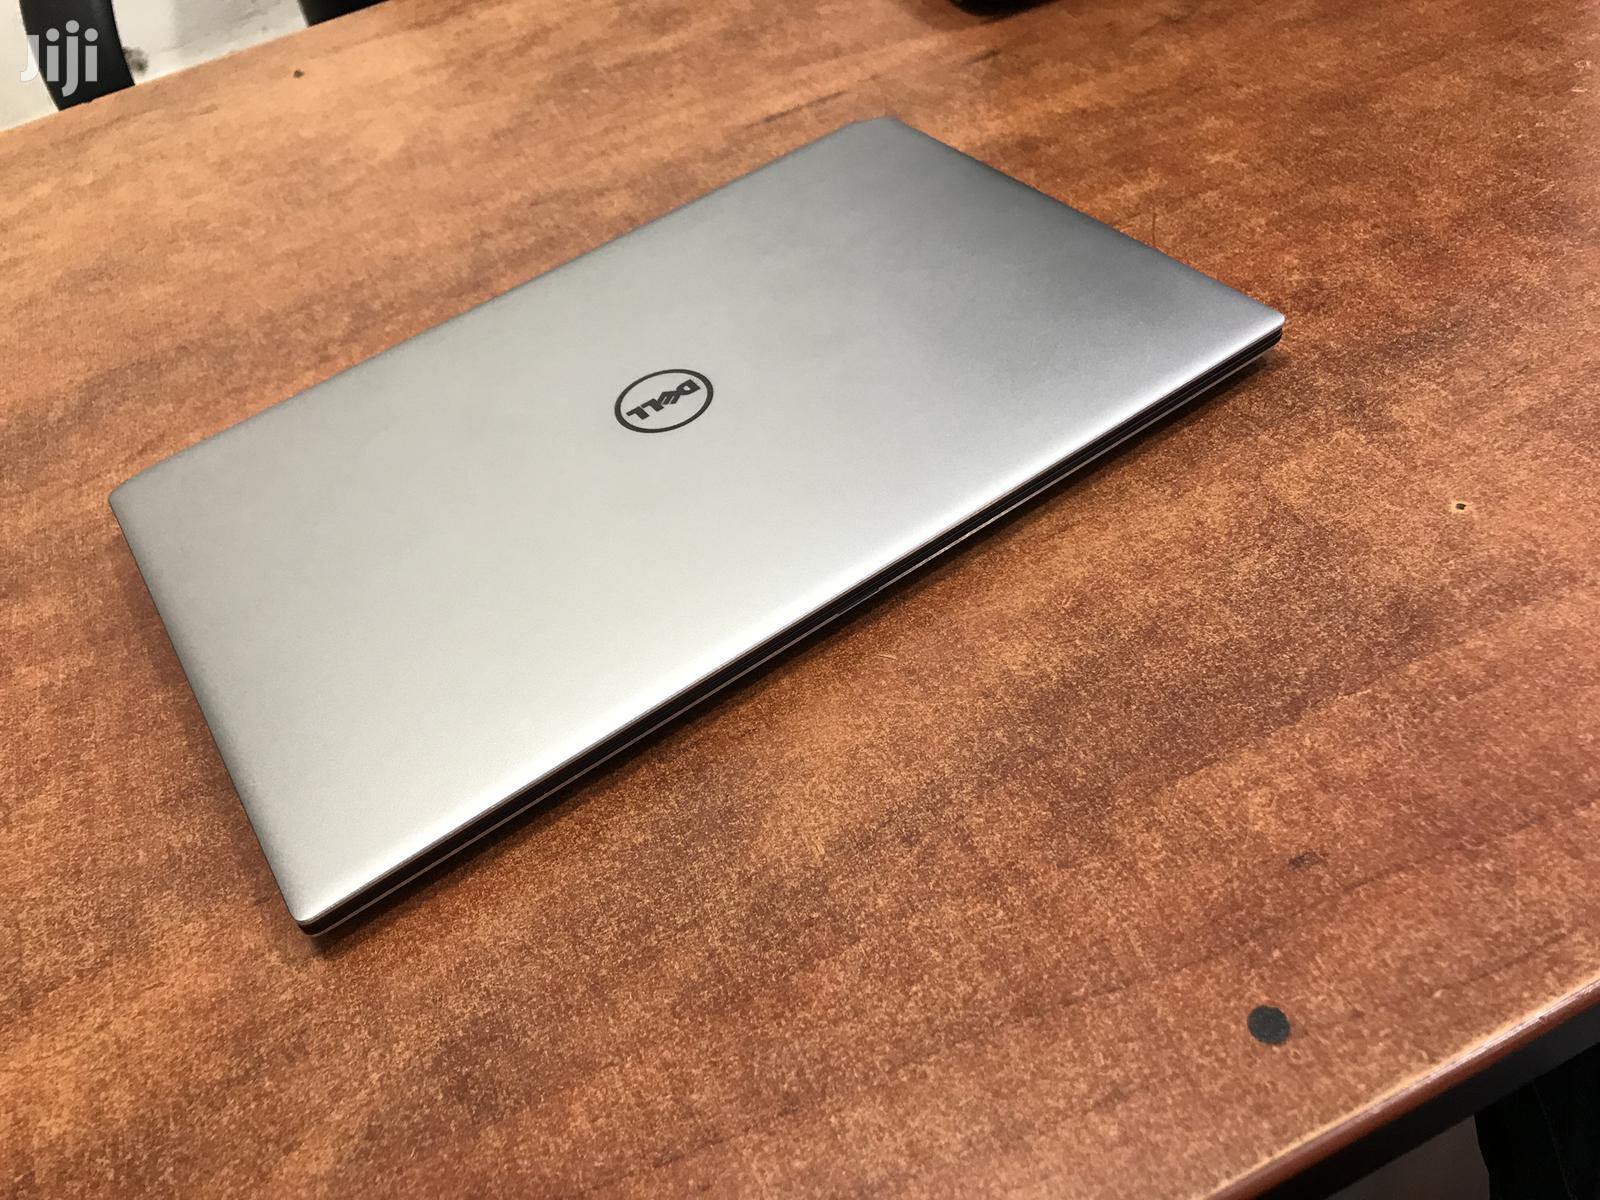 Laptop Dell XPS 13 9350 8GB Intel Core i7 SSD 256GB | Laptops & Computers for sale in Kampala, Central Region, Uganda